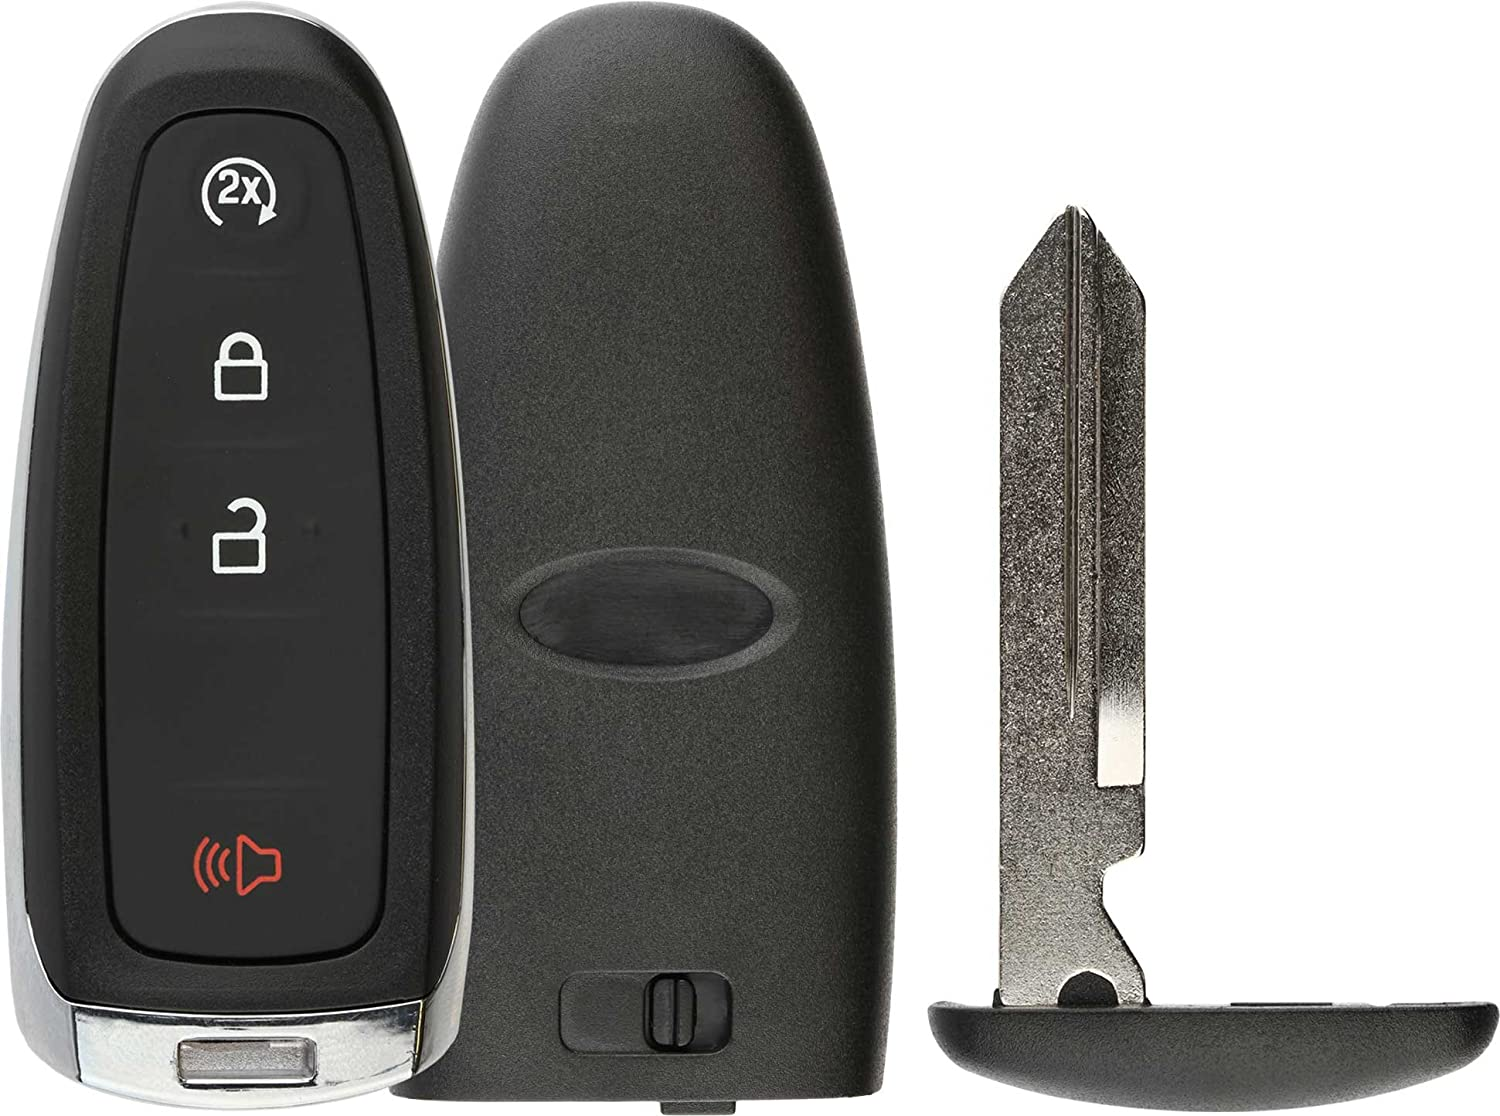 M3N5WY8609 Shell Case Key Fob Keyless Entry Remote fits Ford Edge Expedition Explorer Flex Focus Taurus Lincoln MKX MKS MKT Navigator 2011 2012 2013 2014 2015 2016 Set of 2